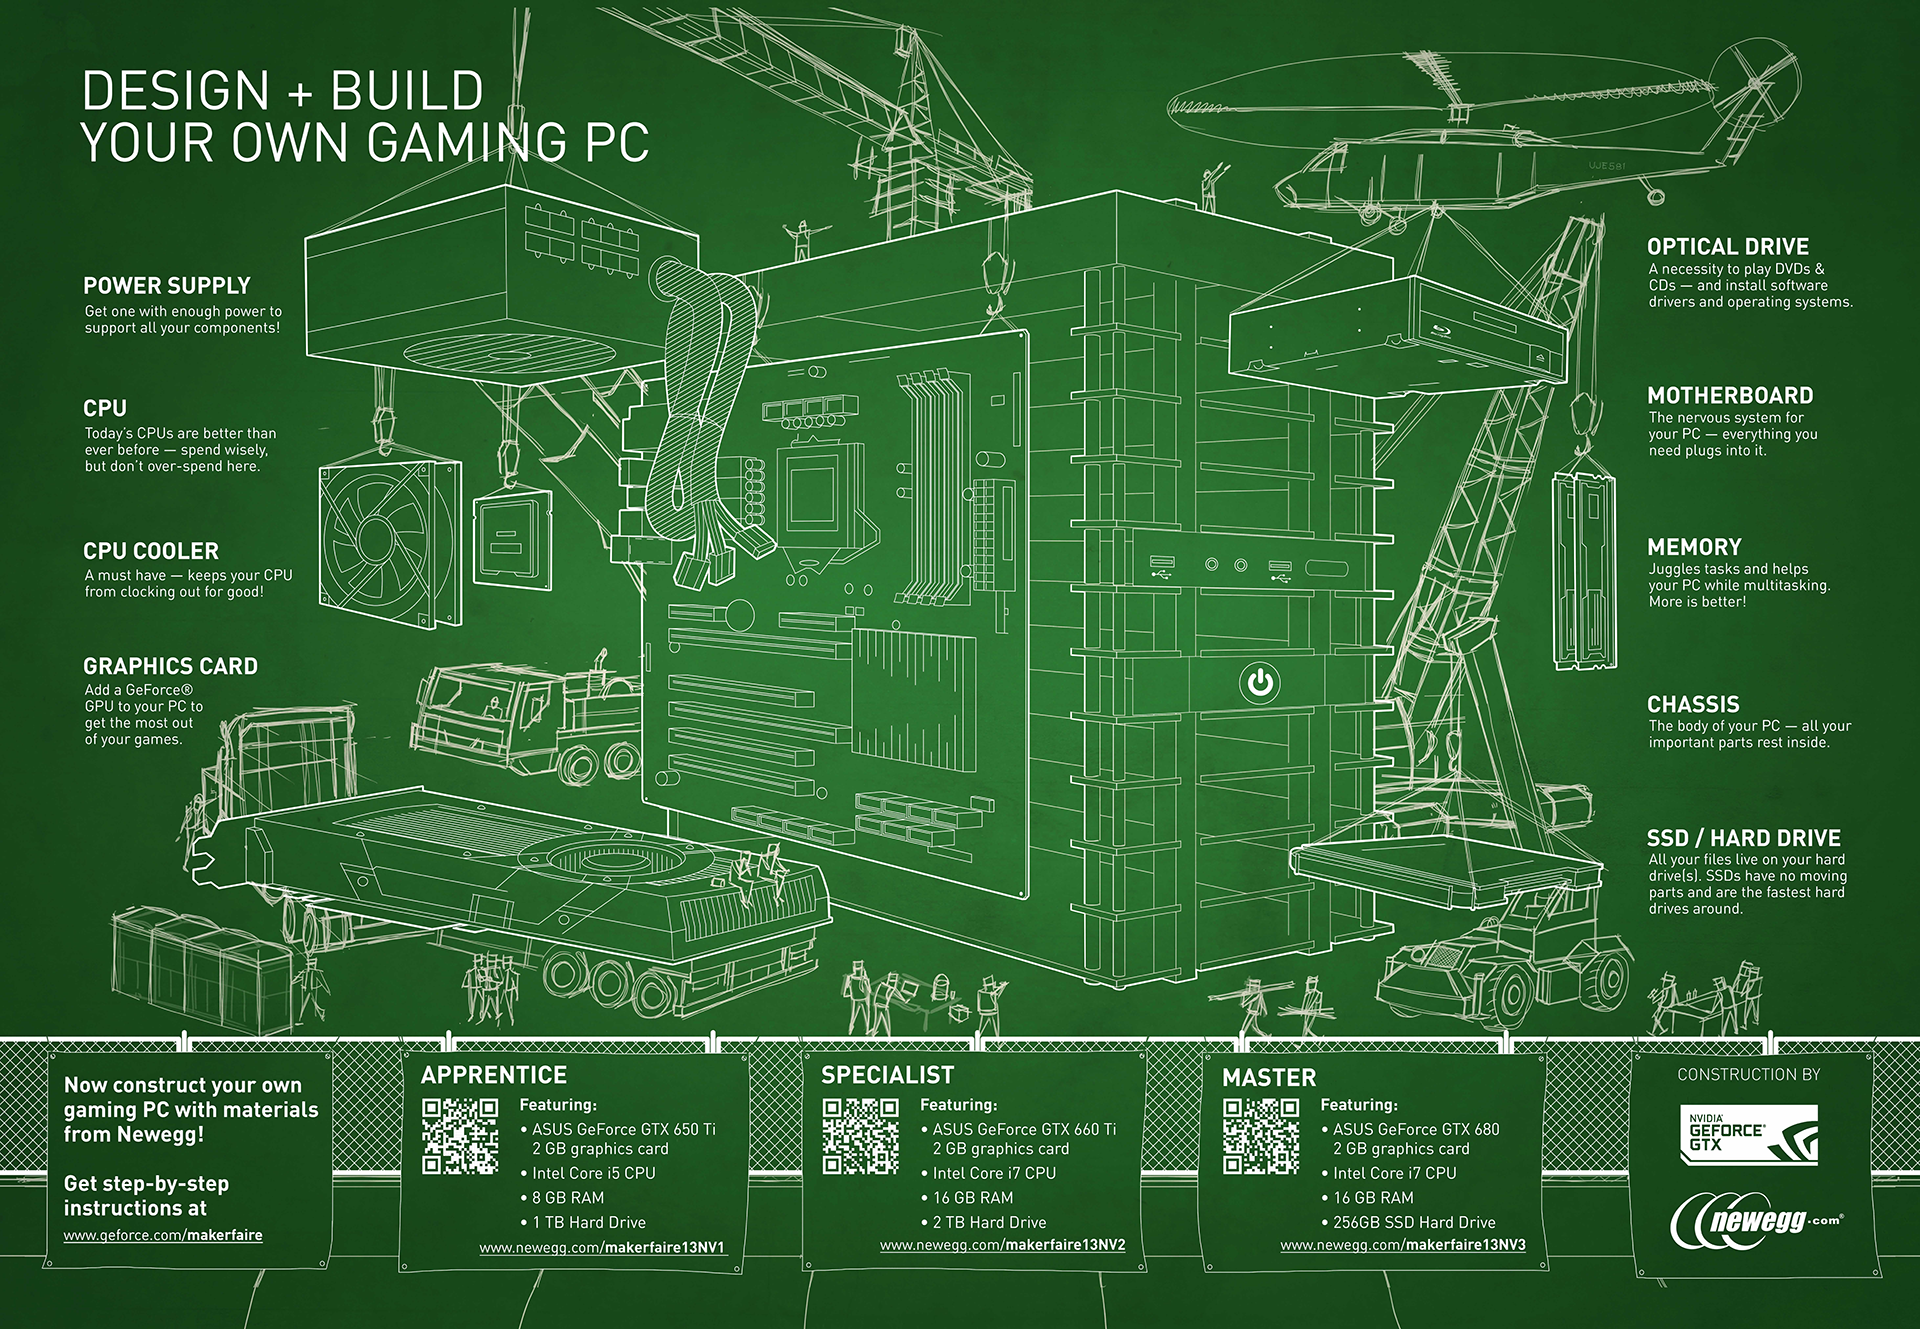 Design + Build Your Own Gaming PC | GeForce